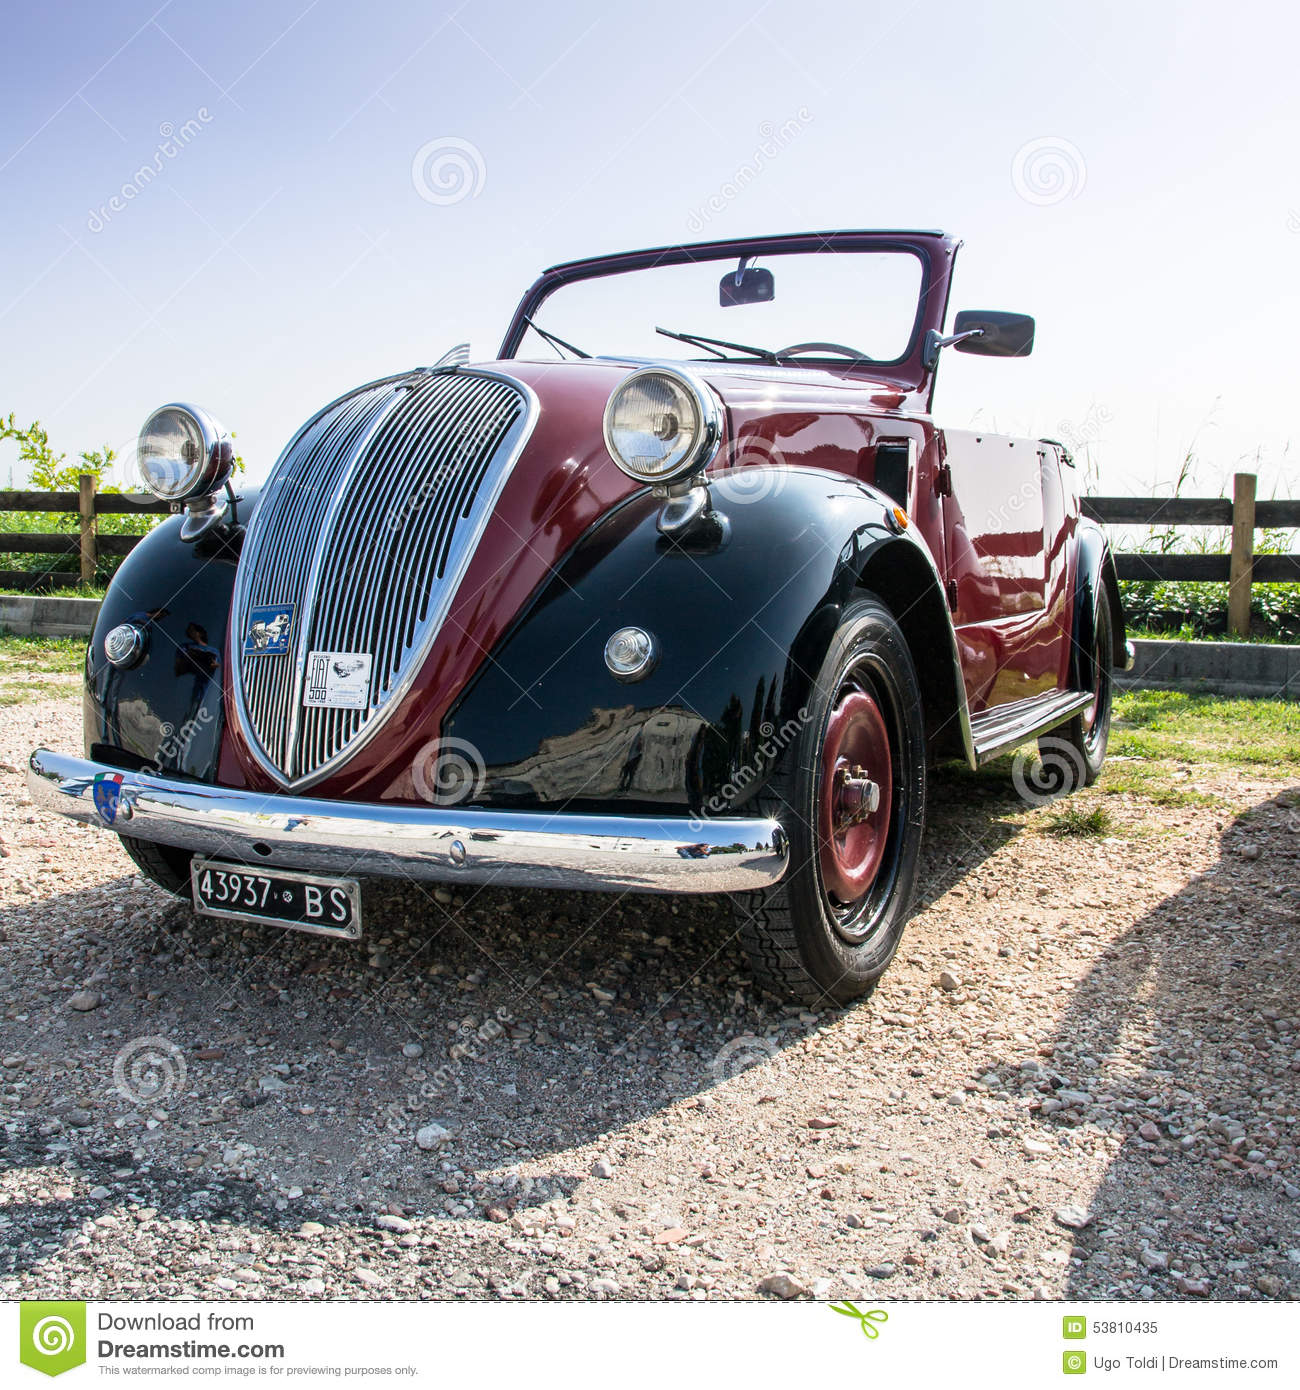 Fiat Topolino Car Editorial Image. Image Of Vehicle, Italy